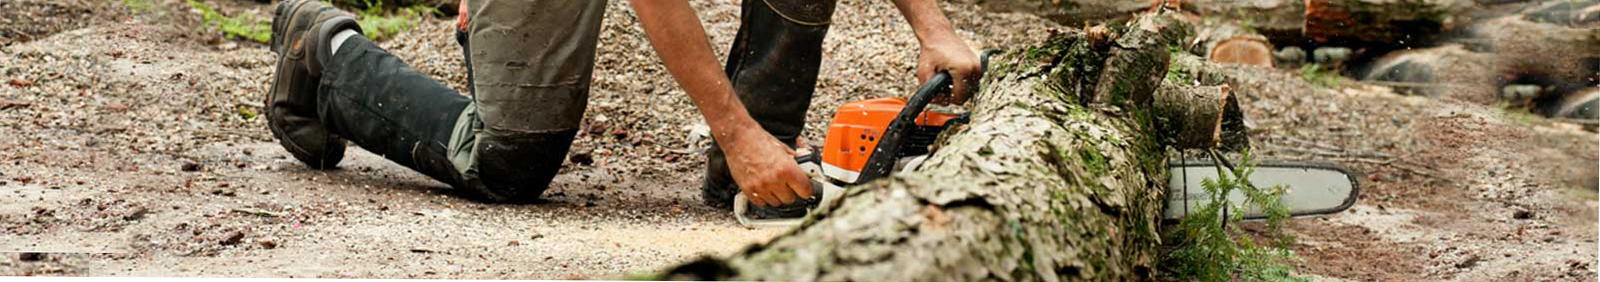 Tree care services in Rochester and Winona MN